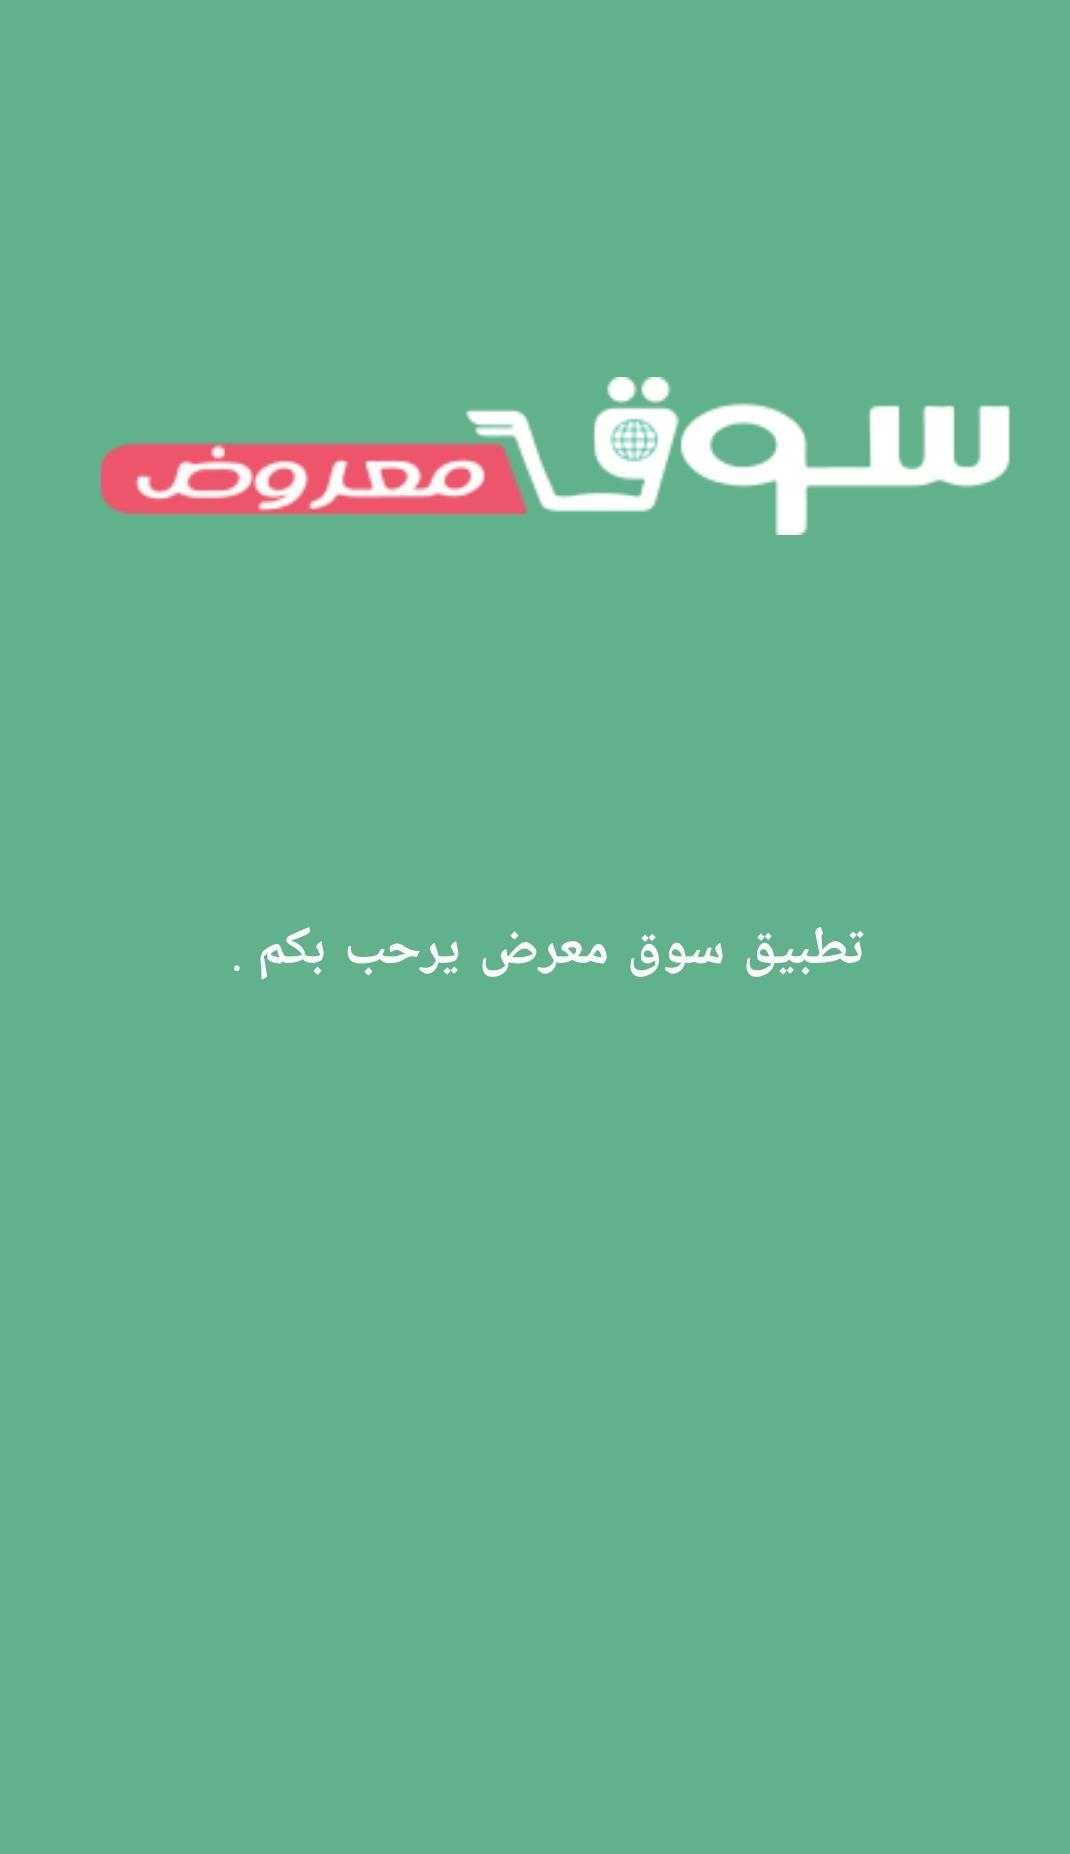 4eaec311f سوق معروض for Android - APK Download